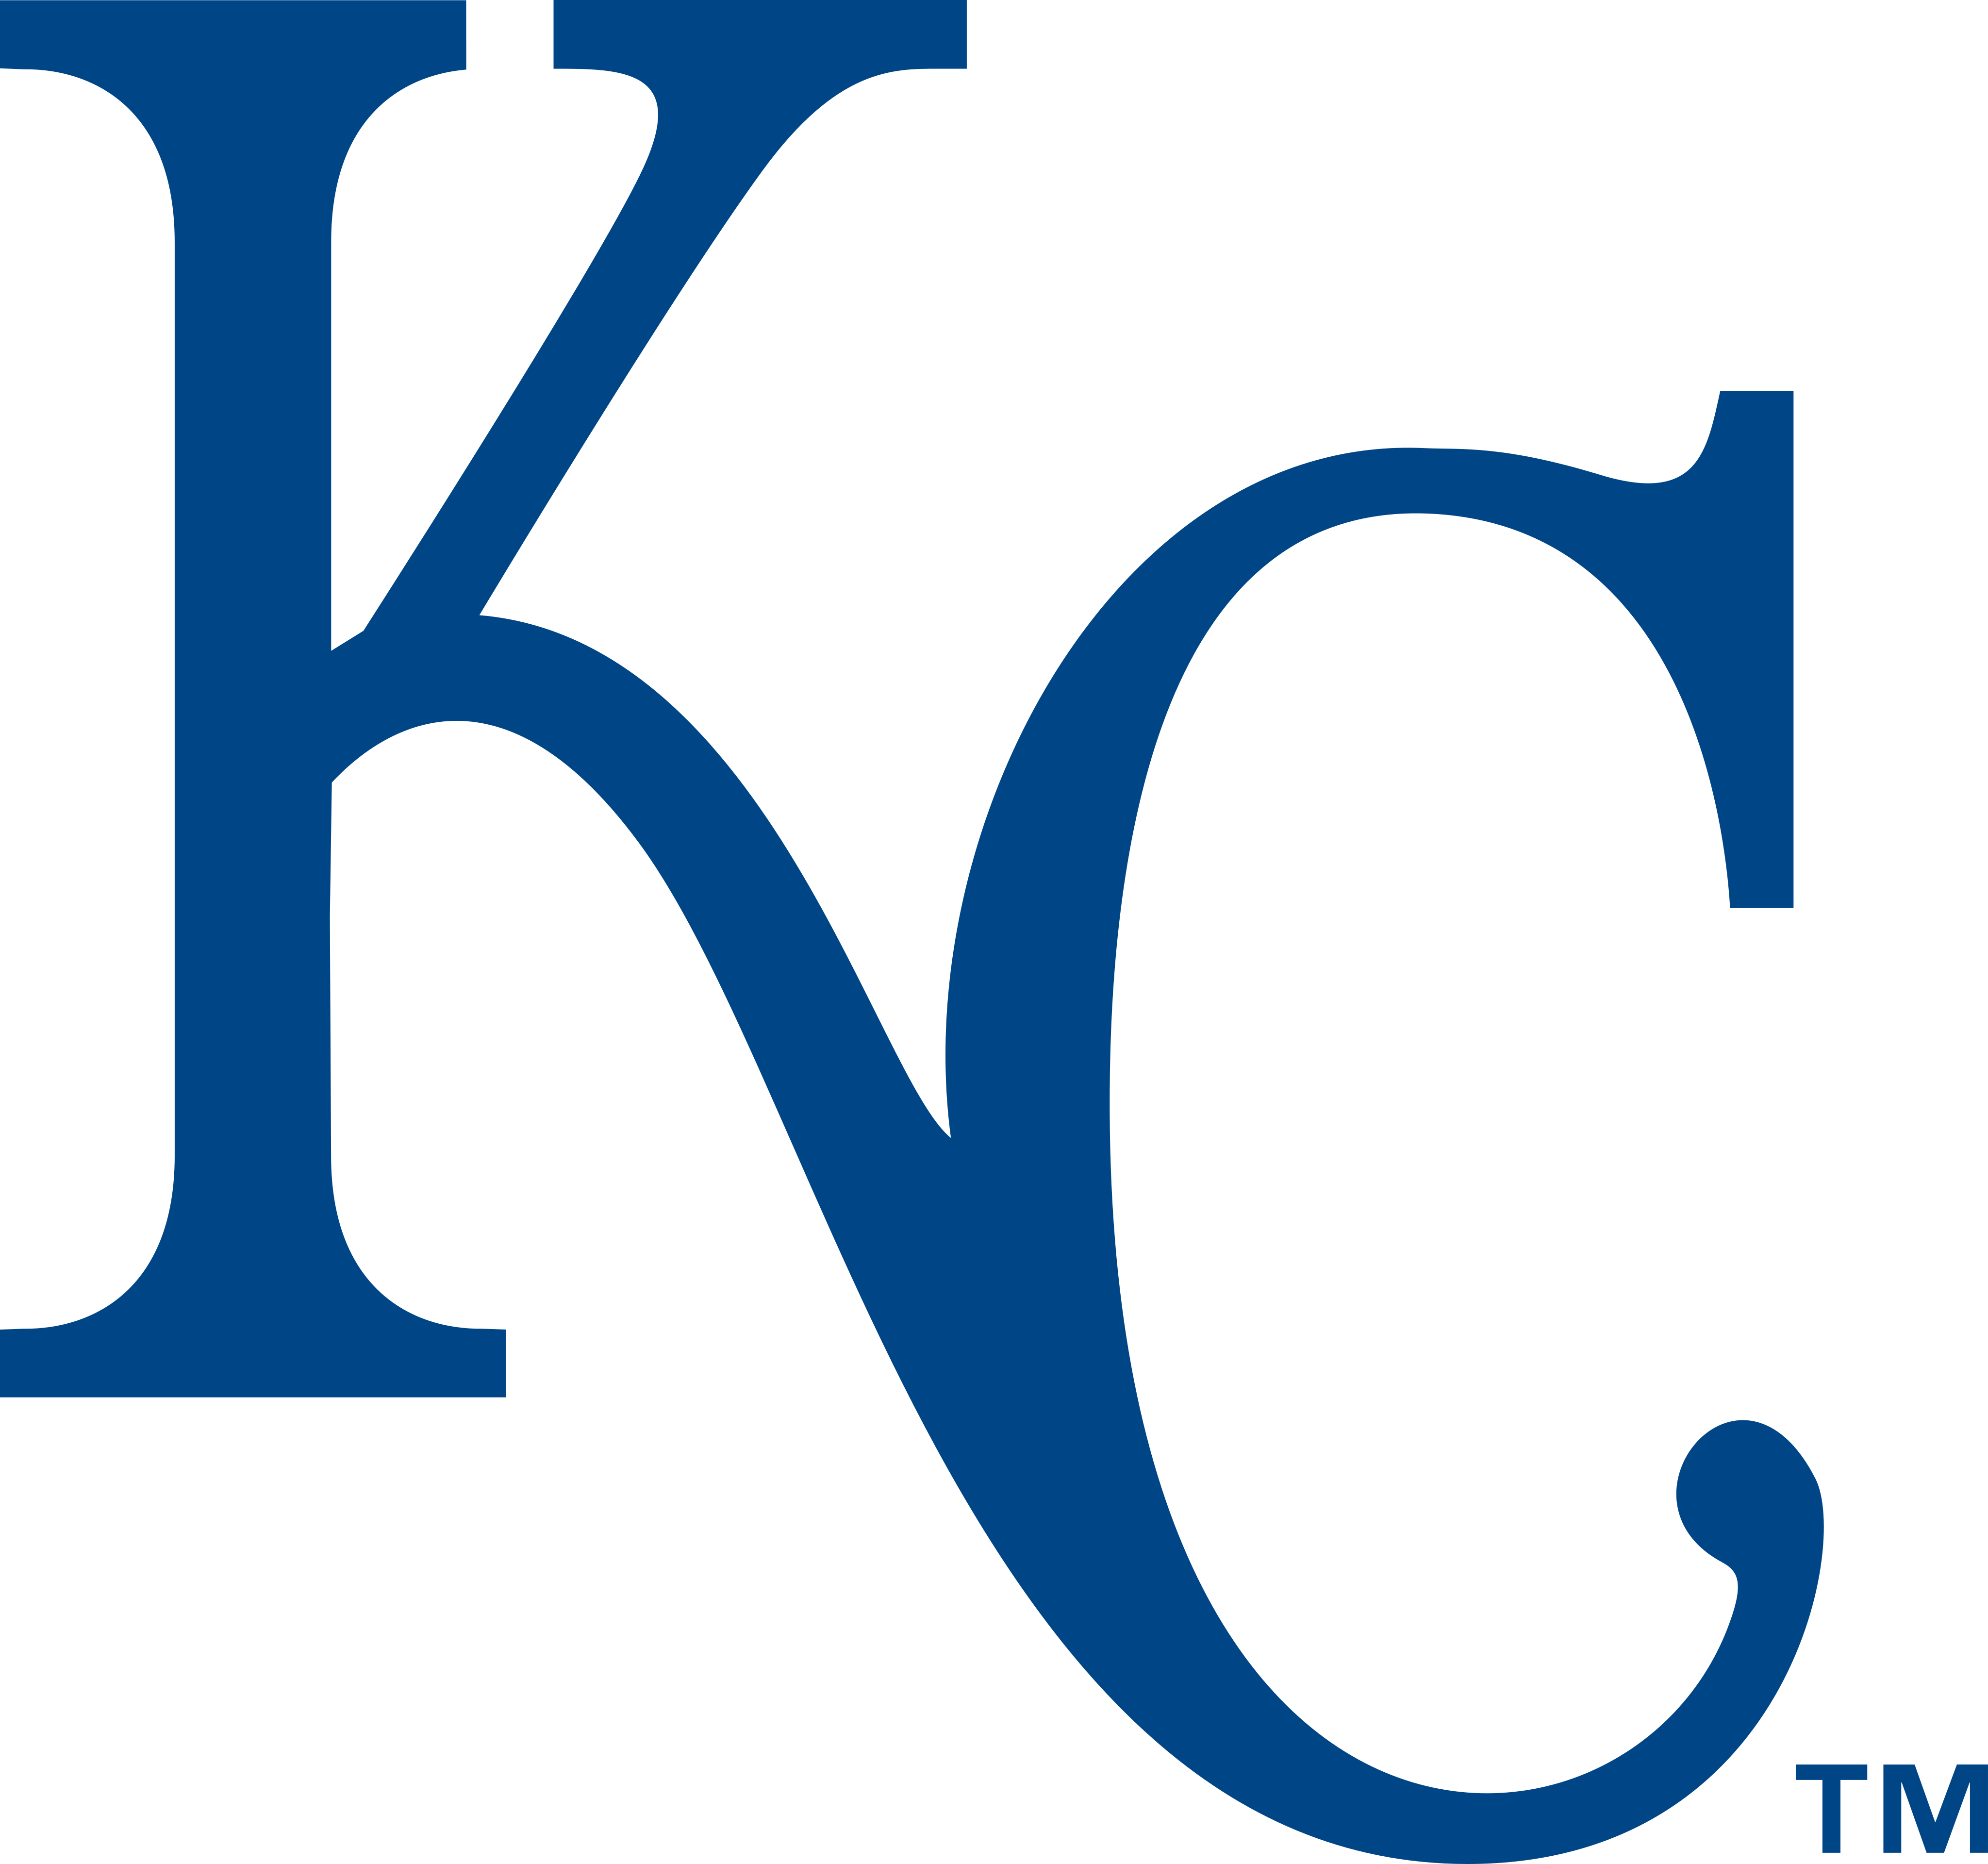 kansas city royals logo - Kansas City Royals Logo